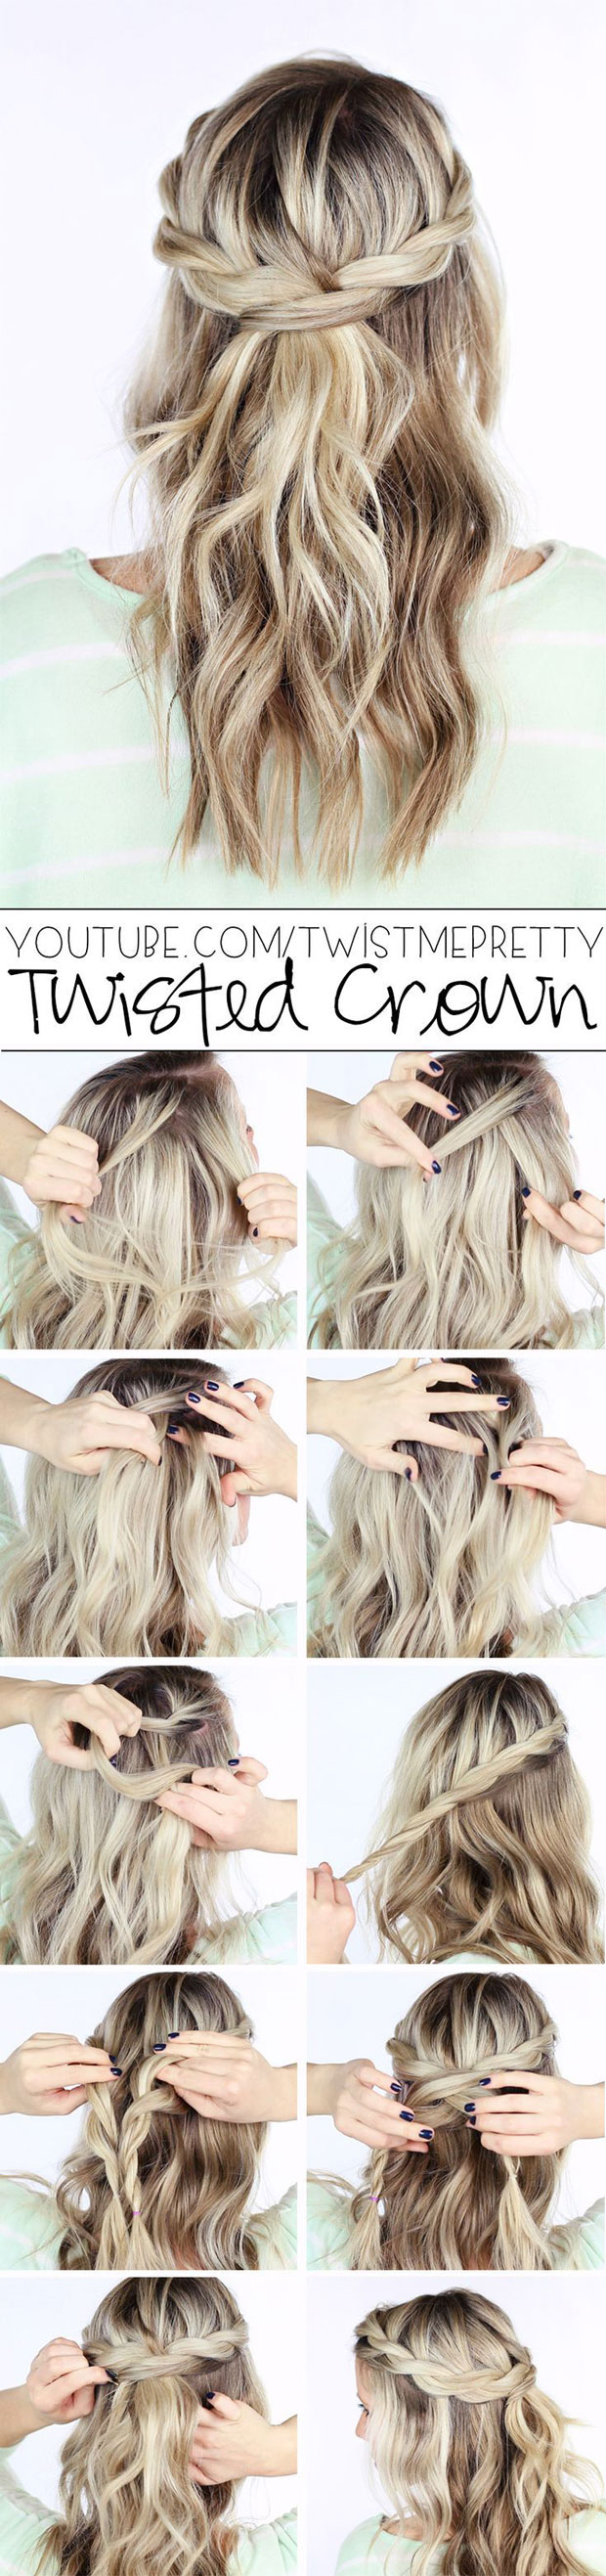 boho-braid-twisted-crown-pinterest-hair-tutorial